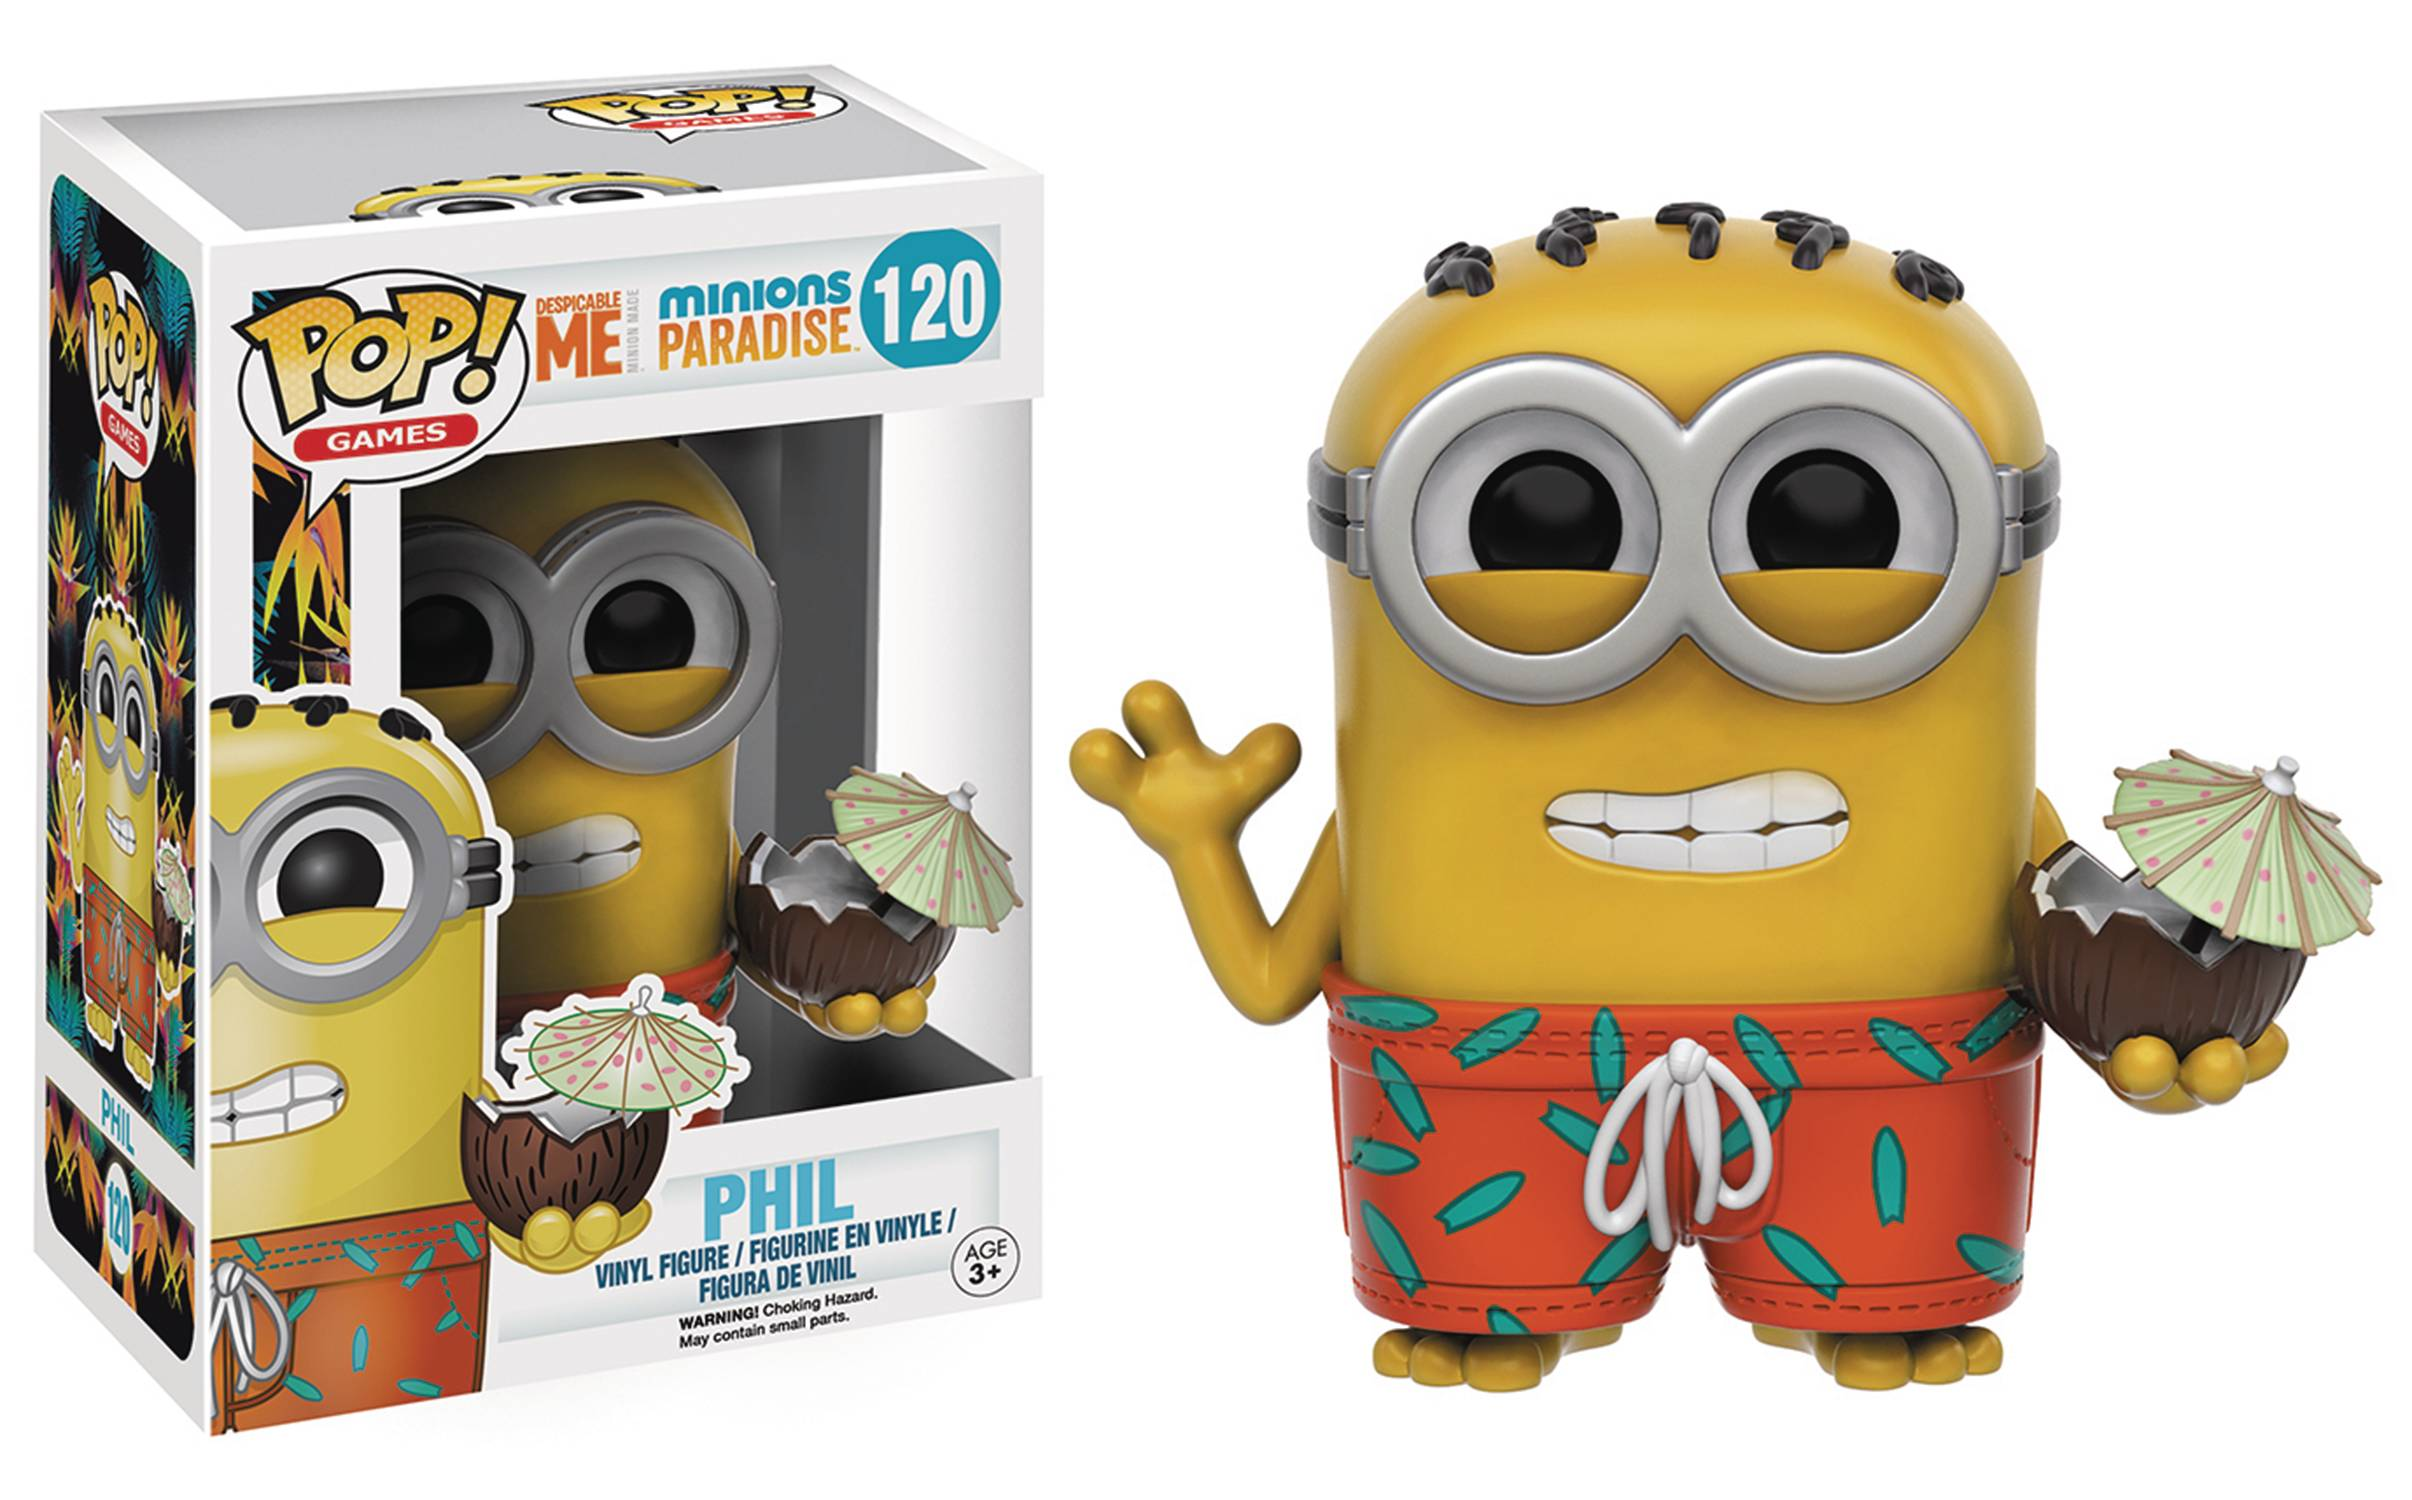 POP MINIONS PARADISE COCONUT VINYL FIG